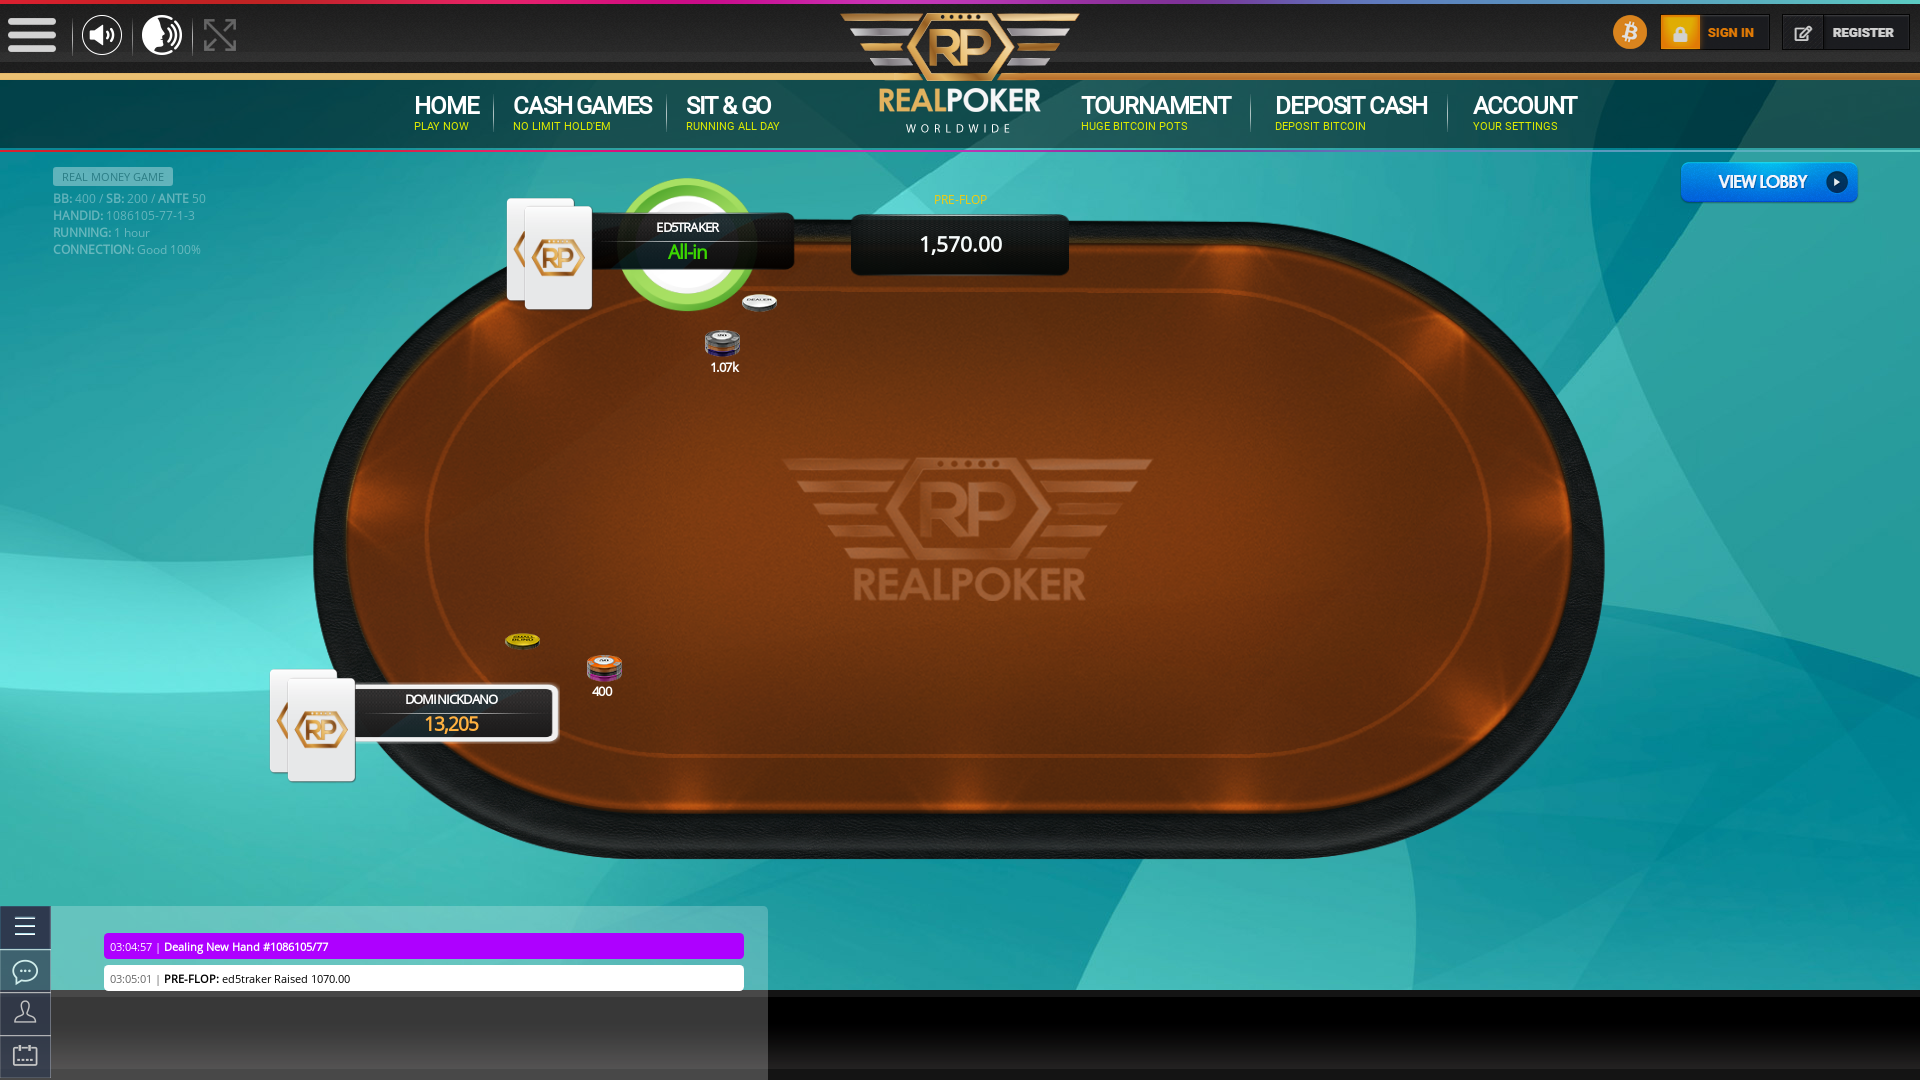 Real poker 10 player table in the 62nd minute